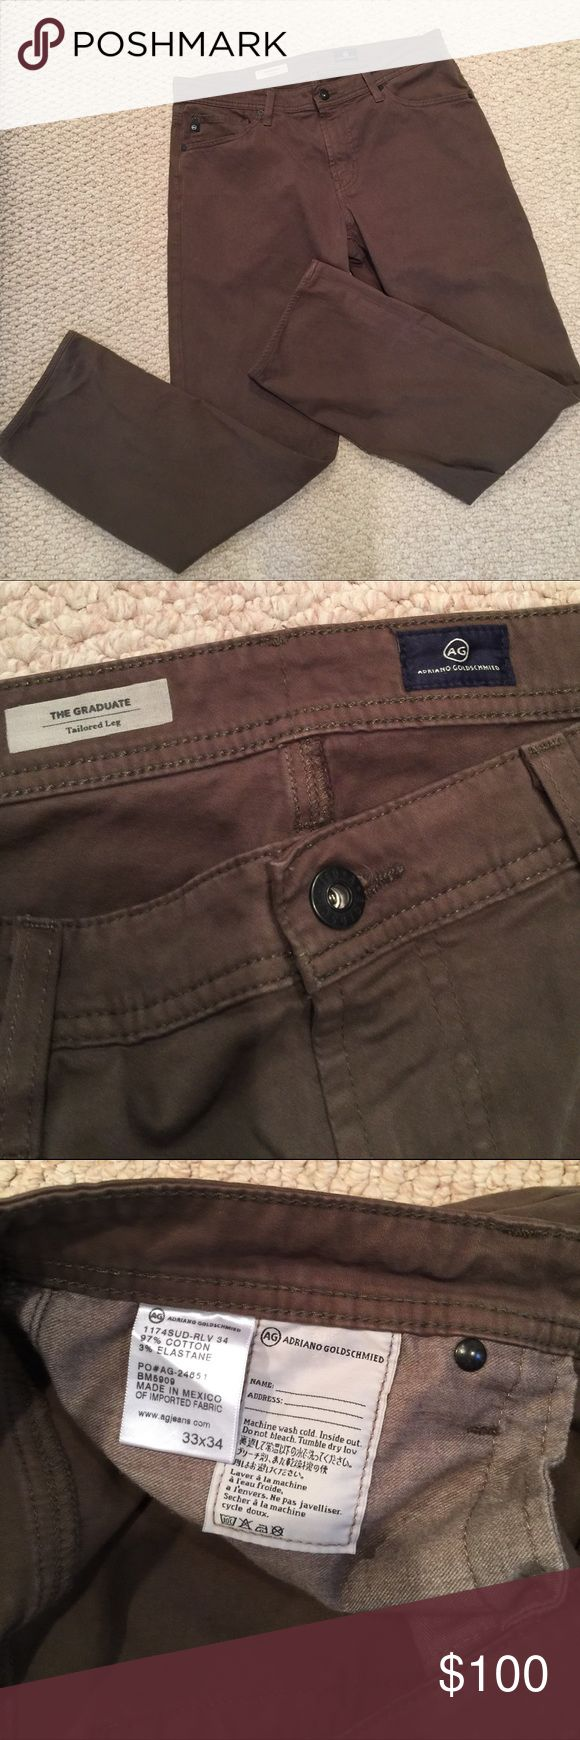 "AG Adriano Goldschmied "" the graduate"" jeans Olive green color barely worn AG  Adriano Goldschmied jeans. Great condition AG Adriano Goldschmied Jeans"